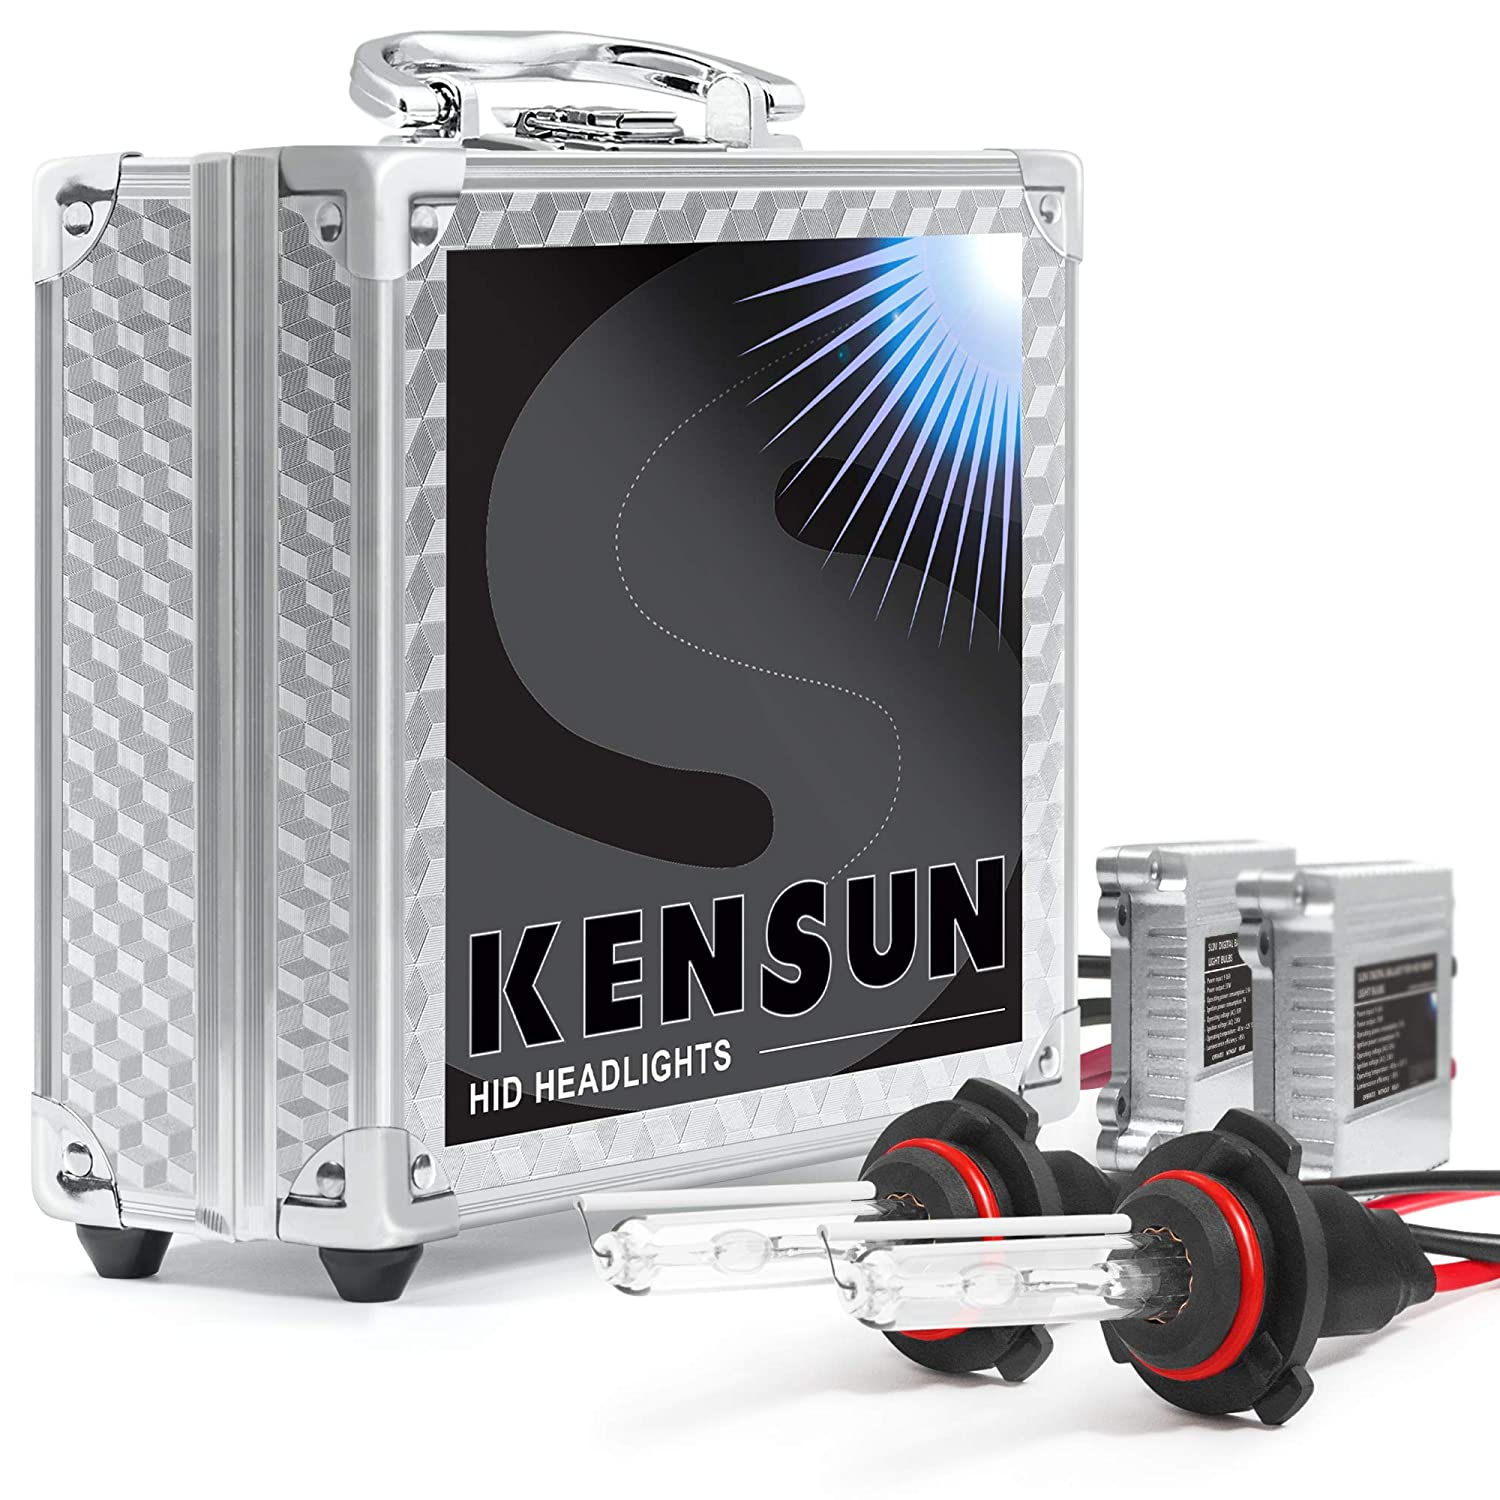 Hid Xenon Headlight Conversion Kit By Kensun 9006 2006 Jeep Liberty Low Beamshigh Beamswiring Diagramfuses 10000k 2 Year Warranty Automotive